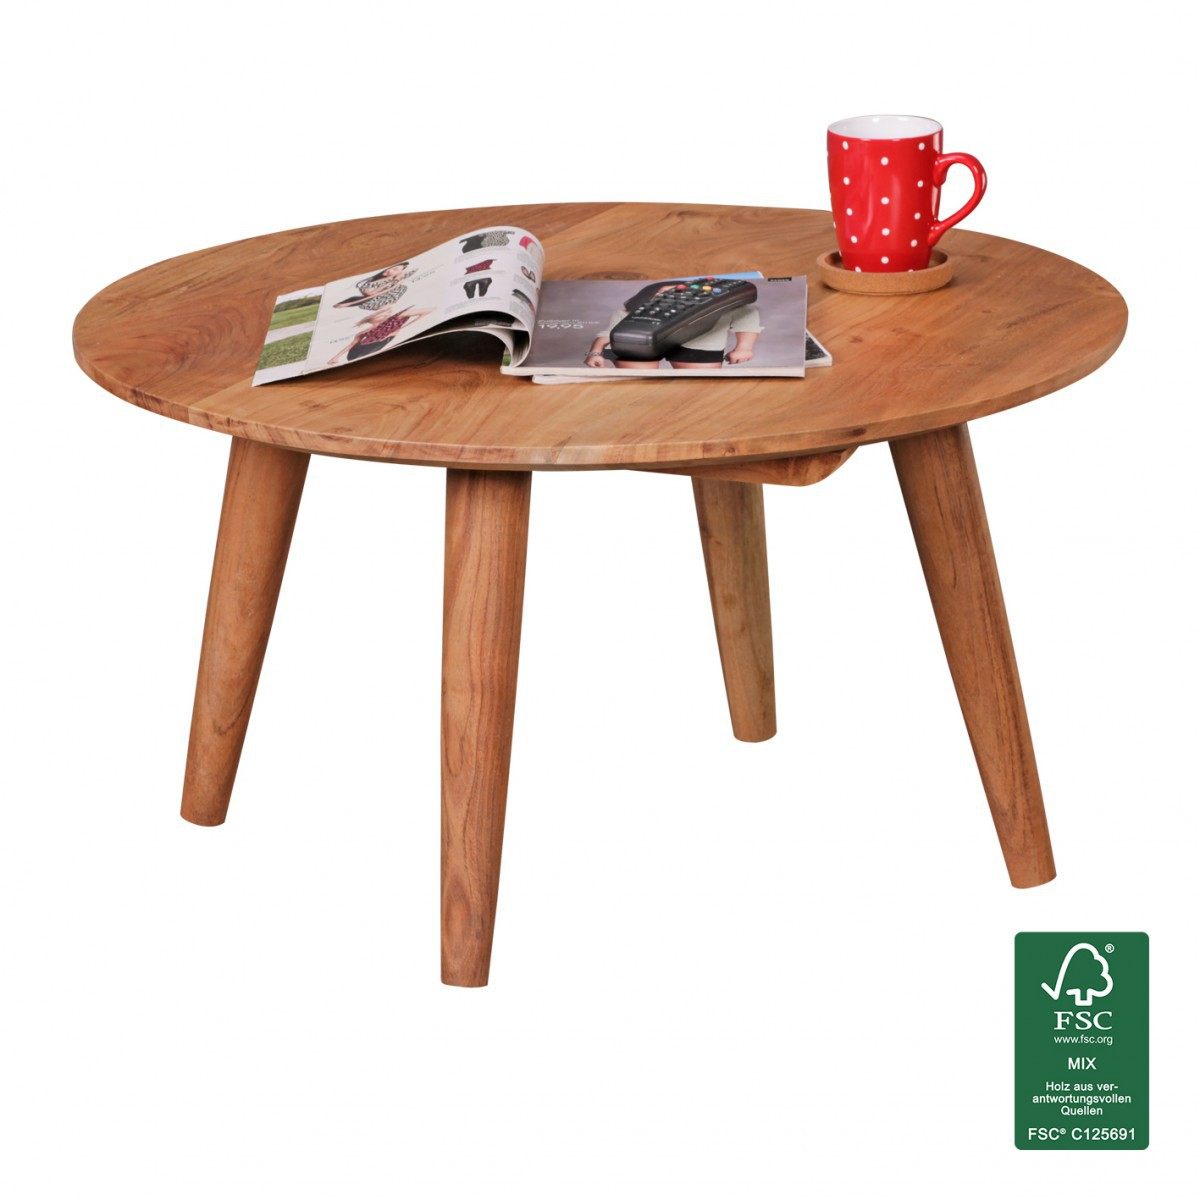 Finebuy table basse en bois massif acacia table basse for Table basse ronde ikea